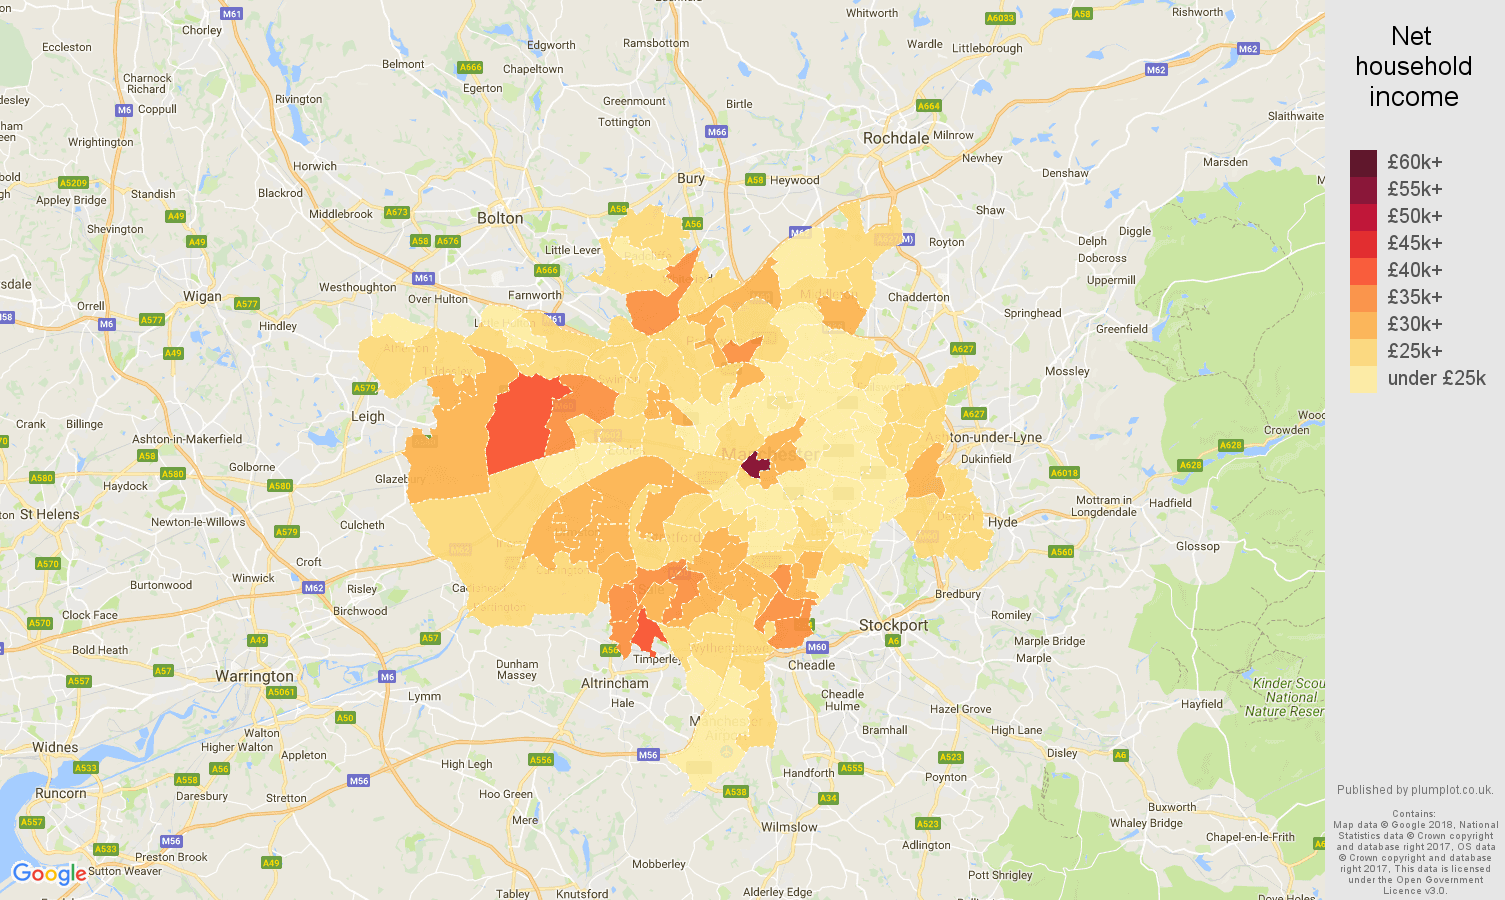 Manchester net household income map